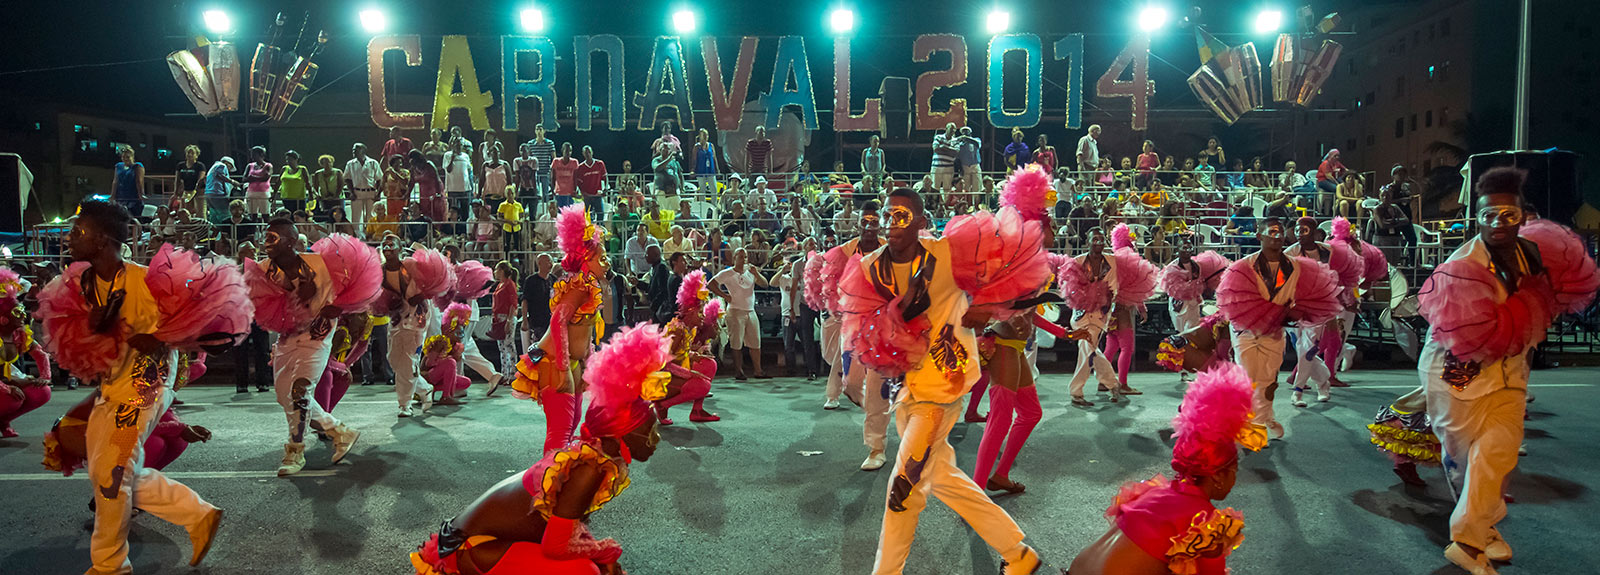 Today, the Havana carnival provokes mixed feelings from Habaneros.